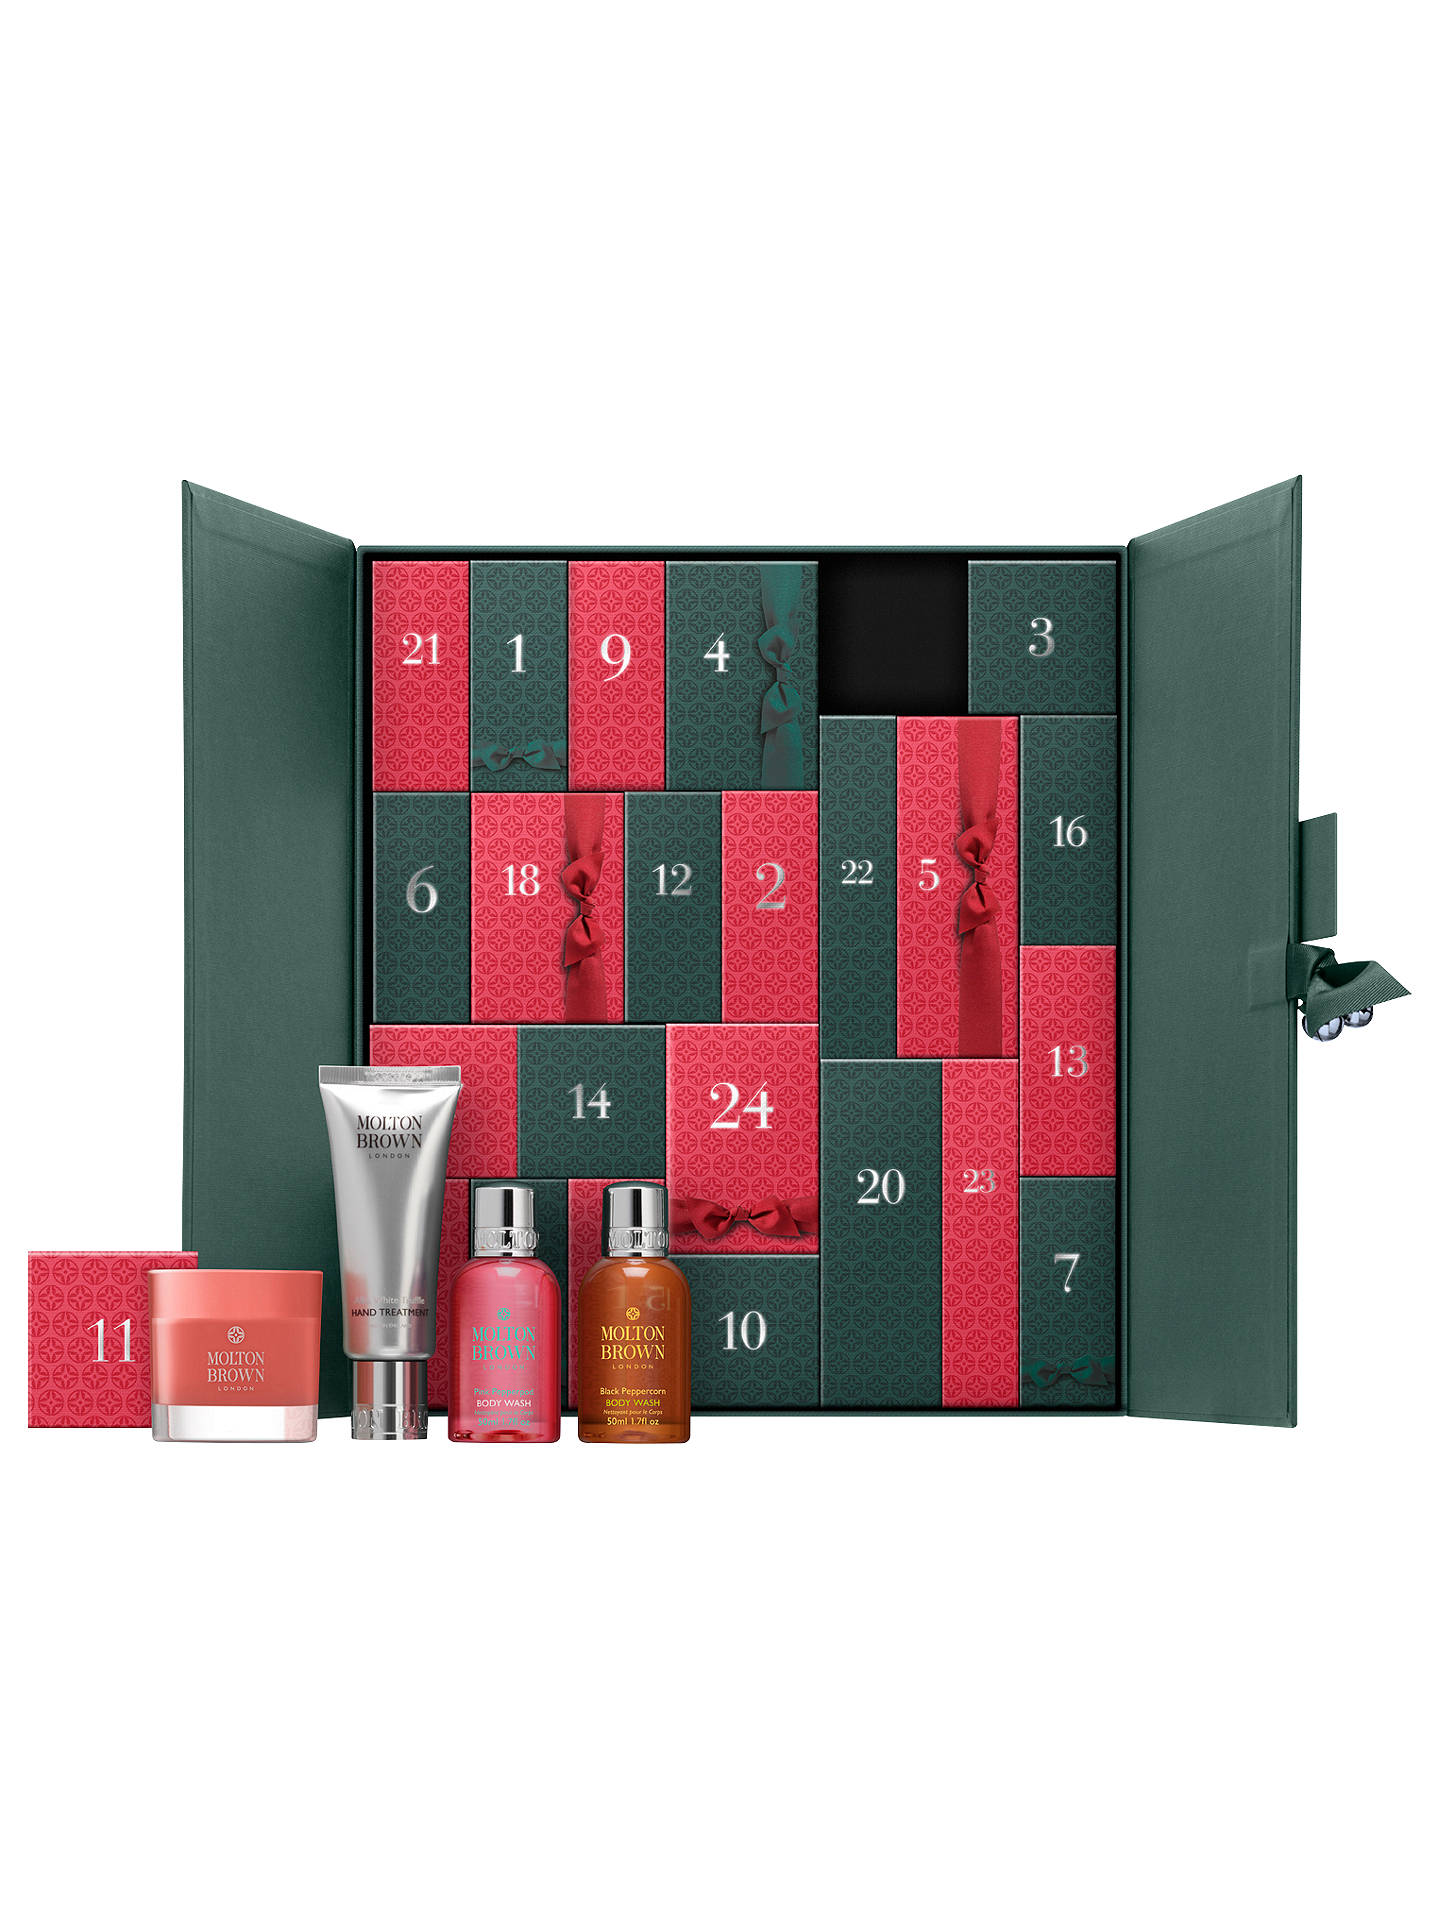 Buy Molton Brown Scented Luxuries Beauty Advent Calendar Online at johnlewis.com